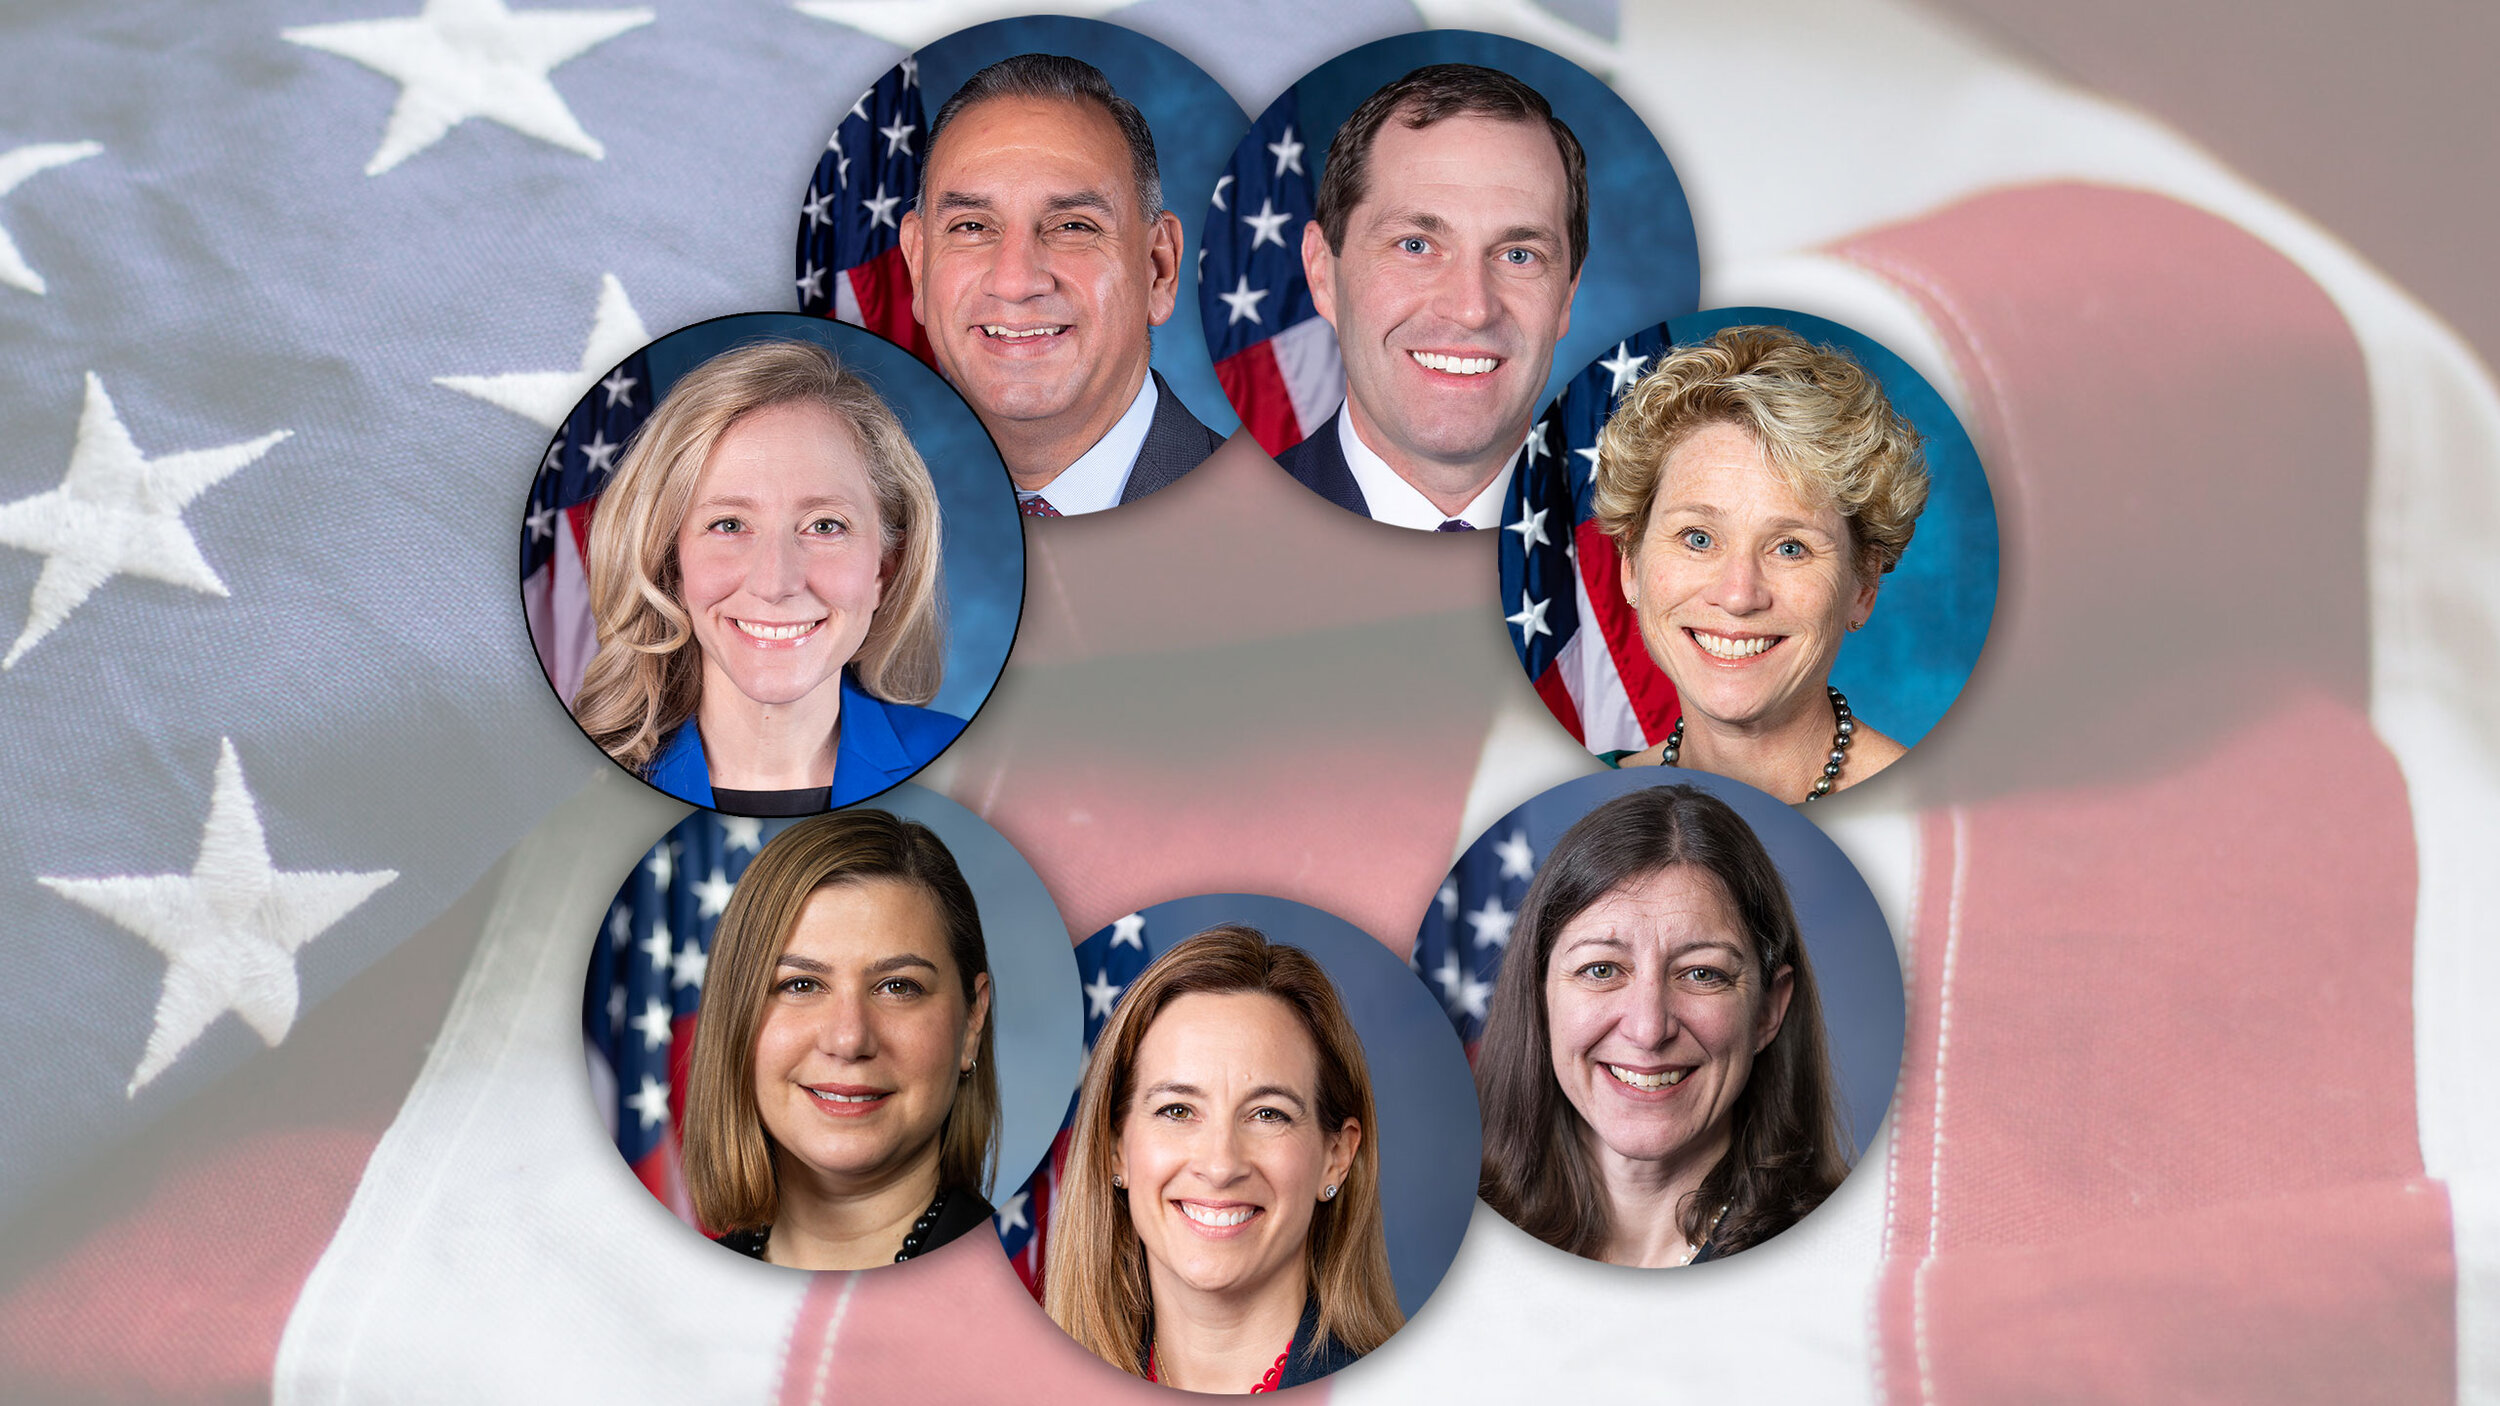 """Seven Democrats, mostly female, sign-onto an op-ed in Washington Post (where """"Democracy Dies in Darkness"""") pretending to care about national security and the Constitution in criticizing Trump for some stupid accusations against him. See story above. Names (from top left): Gil Cisneros, Jason Crow, Chrissy Houlahan, Elaine Luria, Mikie Sherrill, Elissa Slotkin and Abigail Spanberger"""